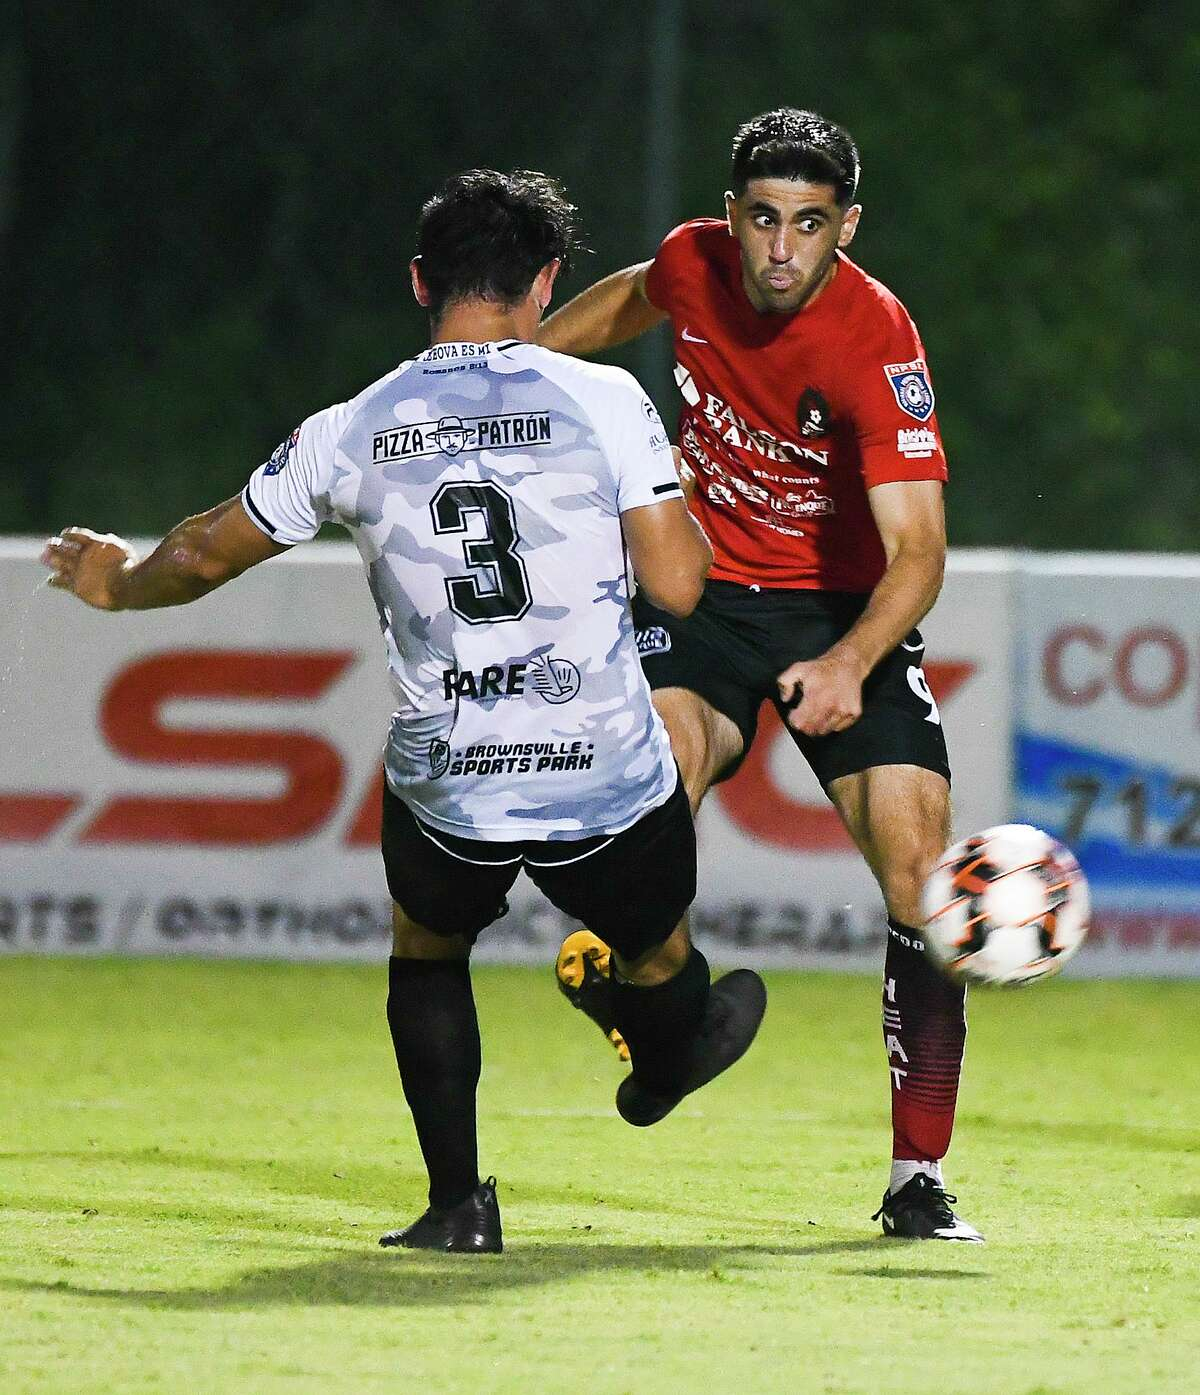 Laredo Heat SC forward Nadav Datner was named to the NPSL Team of the Month after recording four goals and three assists during a 5-0-1 stretch in June.